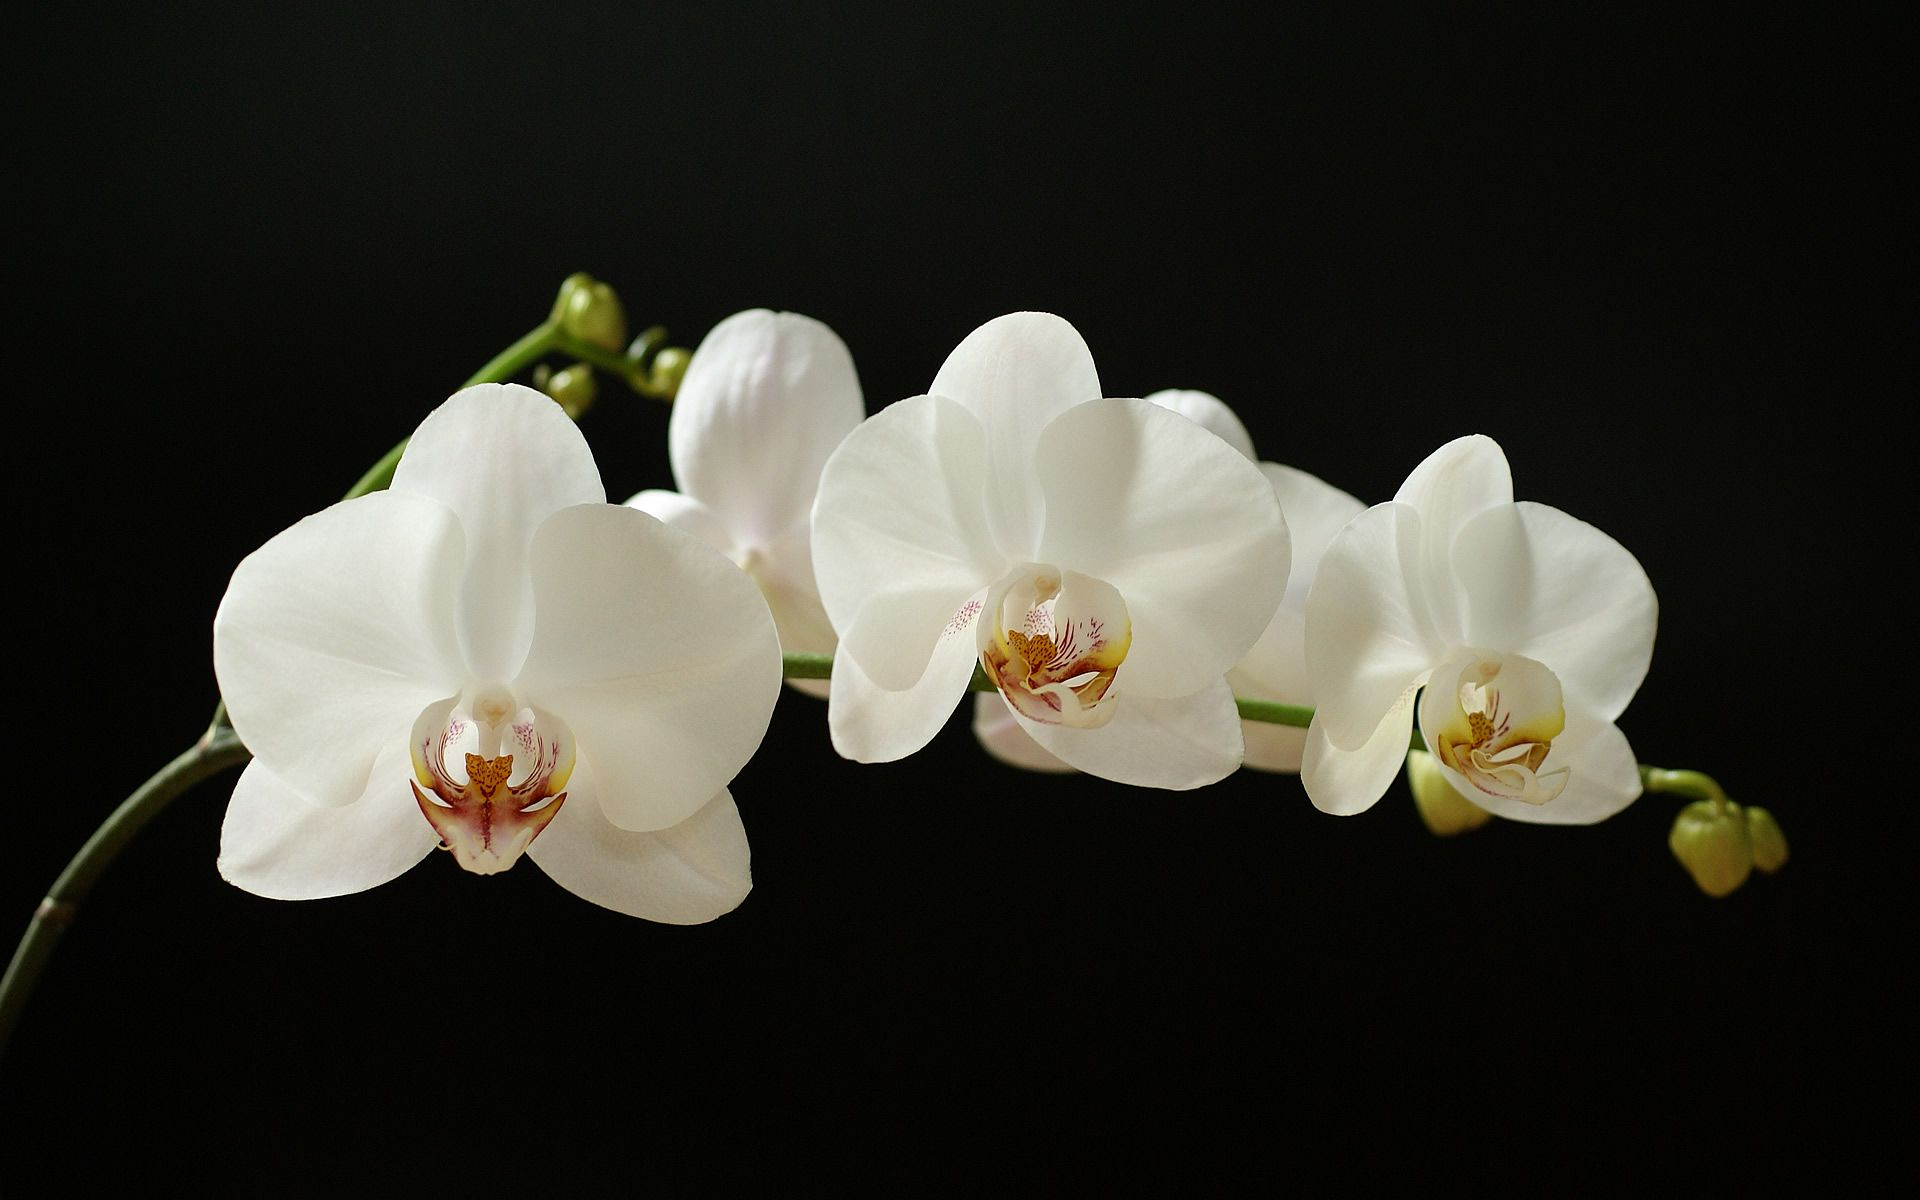 White Orchid Orchid Wallpaper White Orchids Orchid Flower